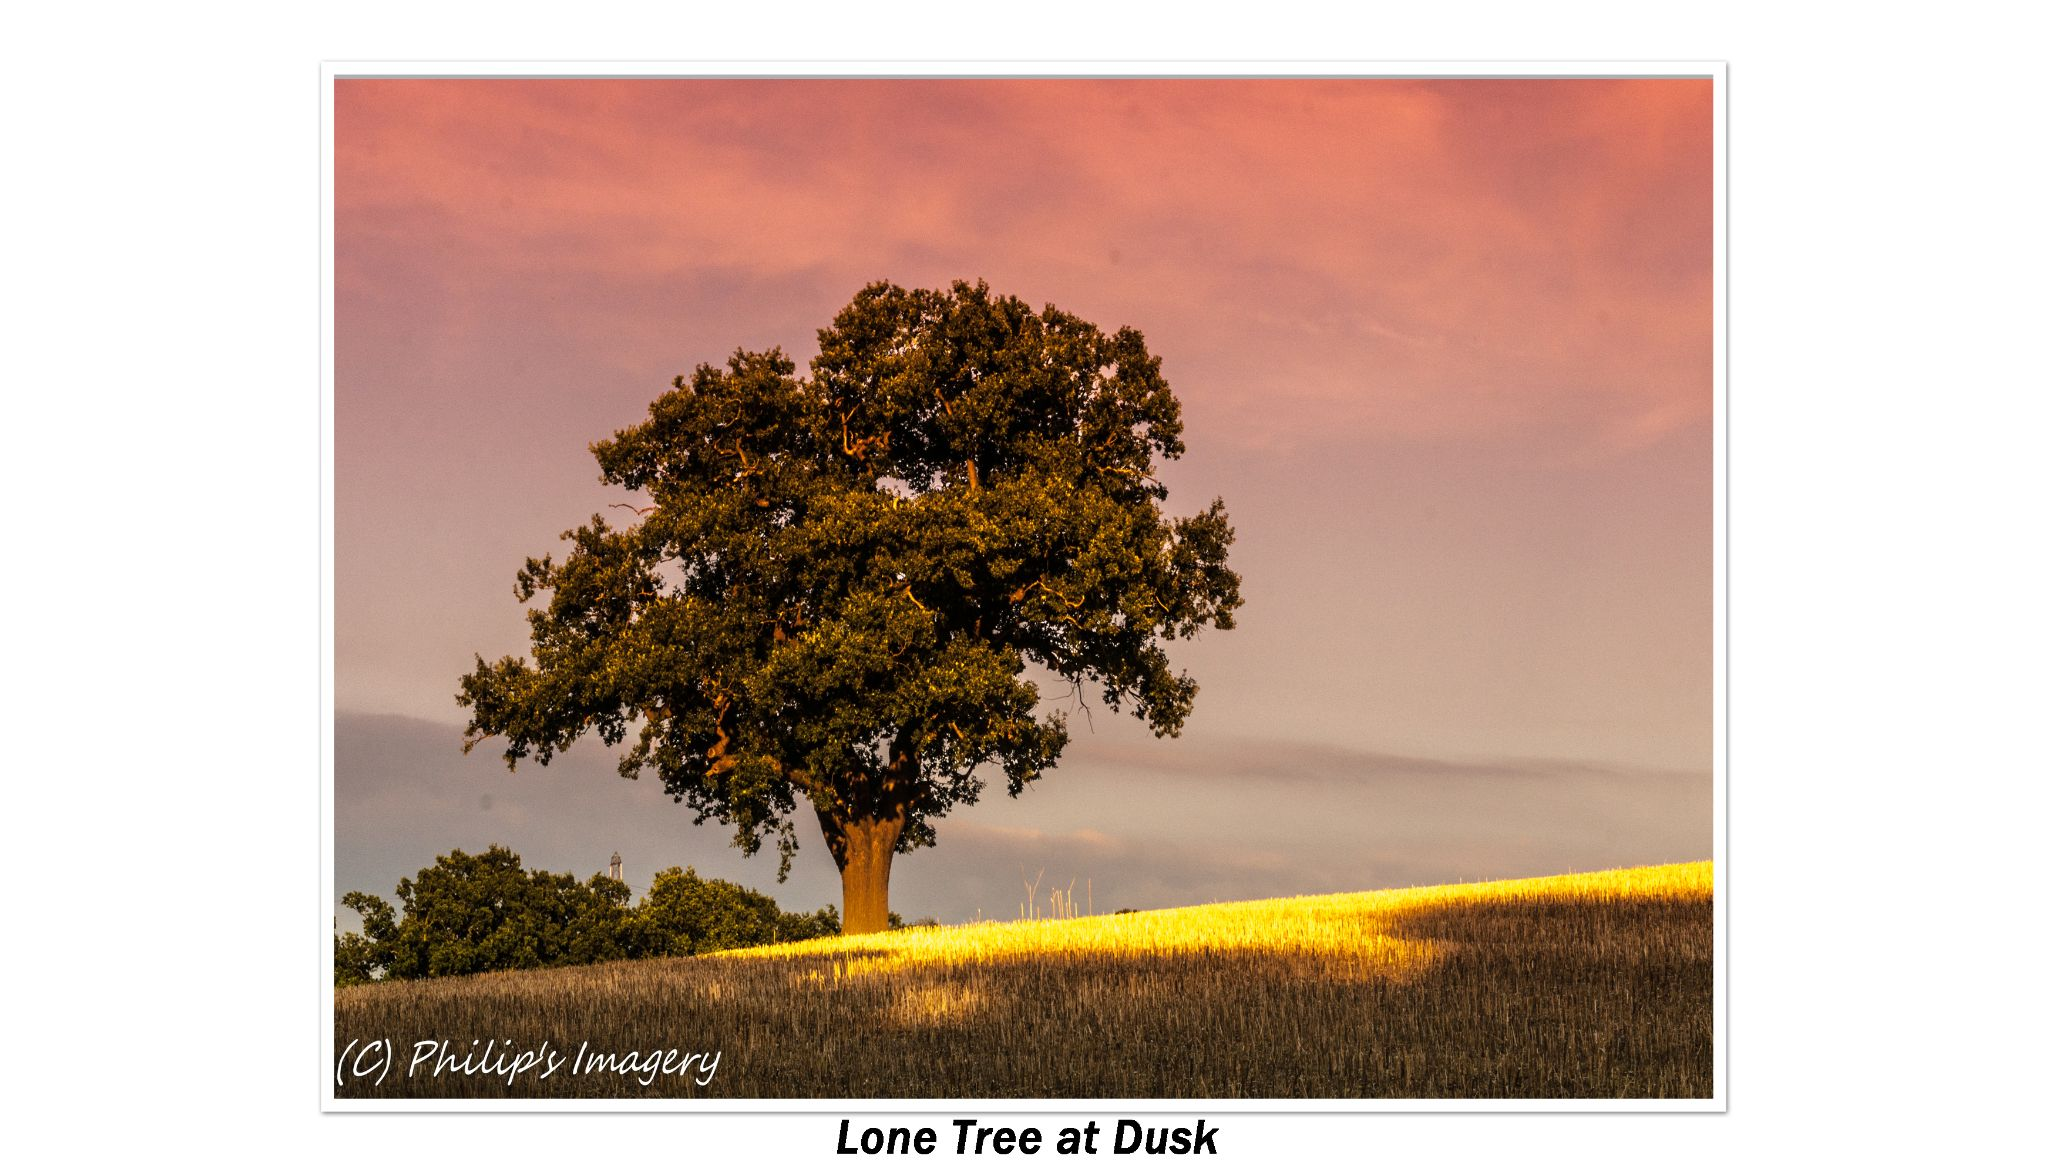 Lone Tree at Dusk by philips images